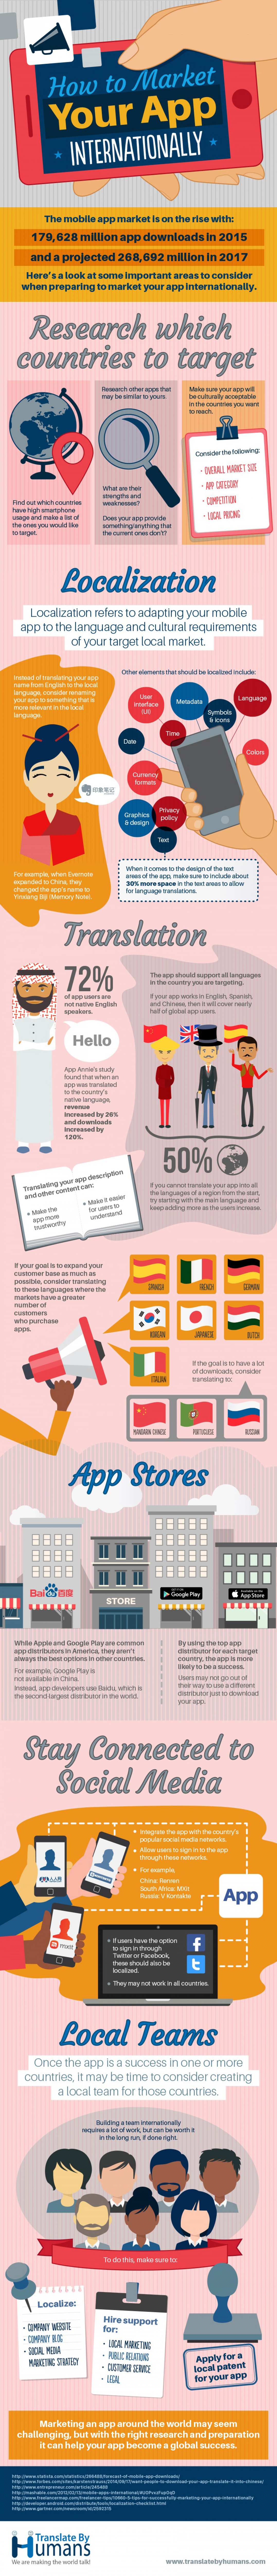 How to Market Your App Internationally Infographic